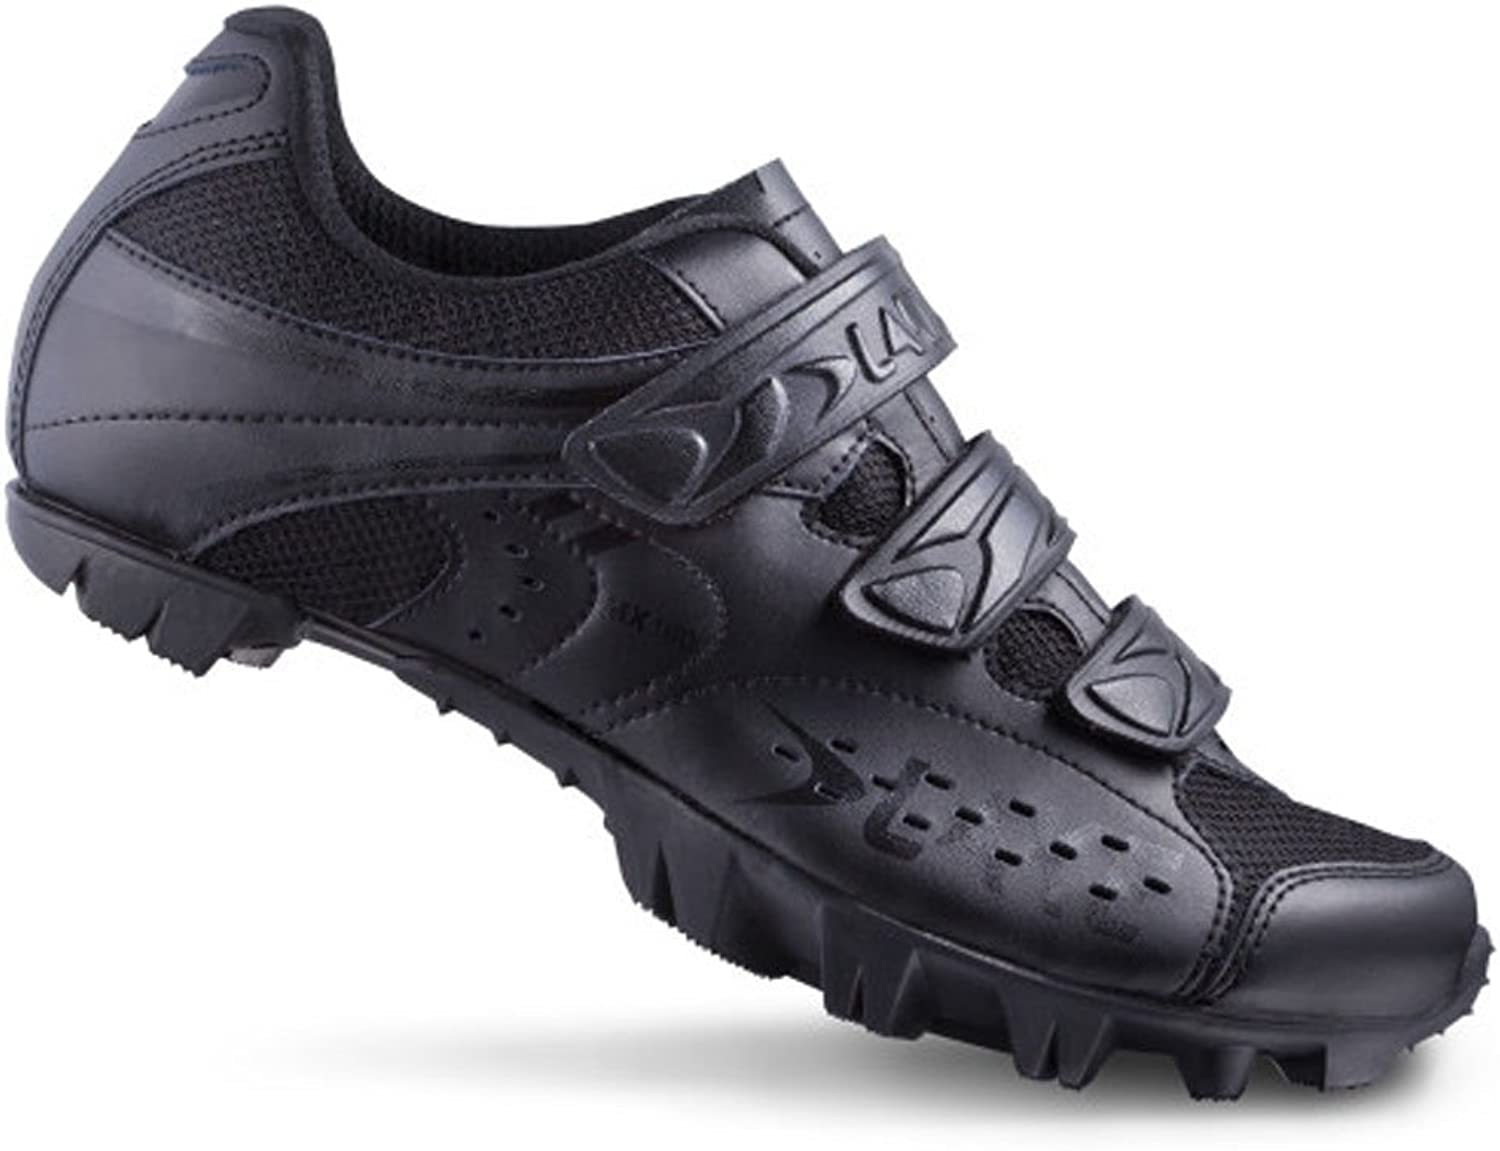 Lake MX160 MTB shoes 37